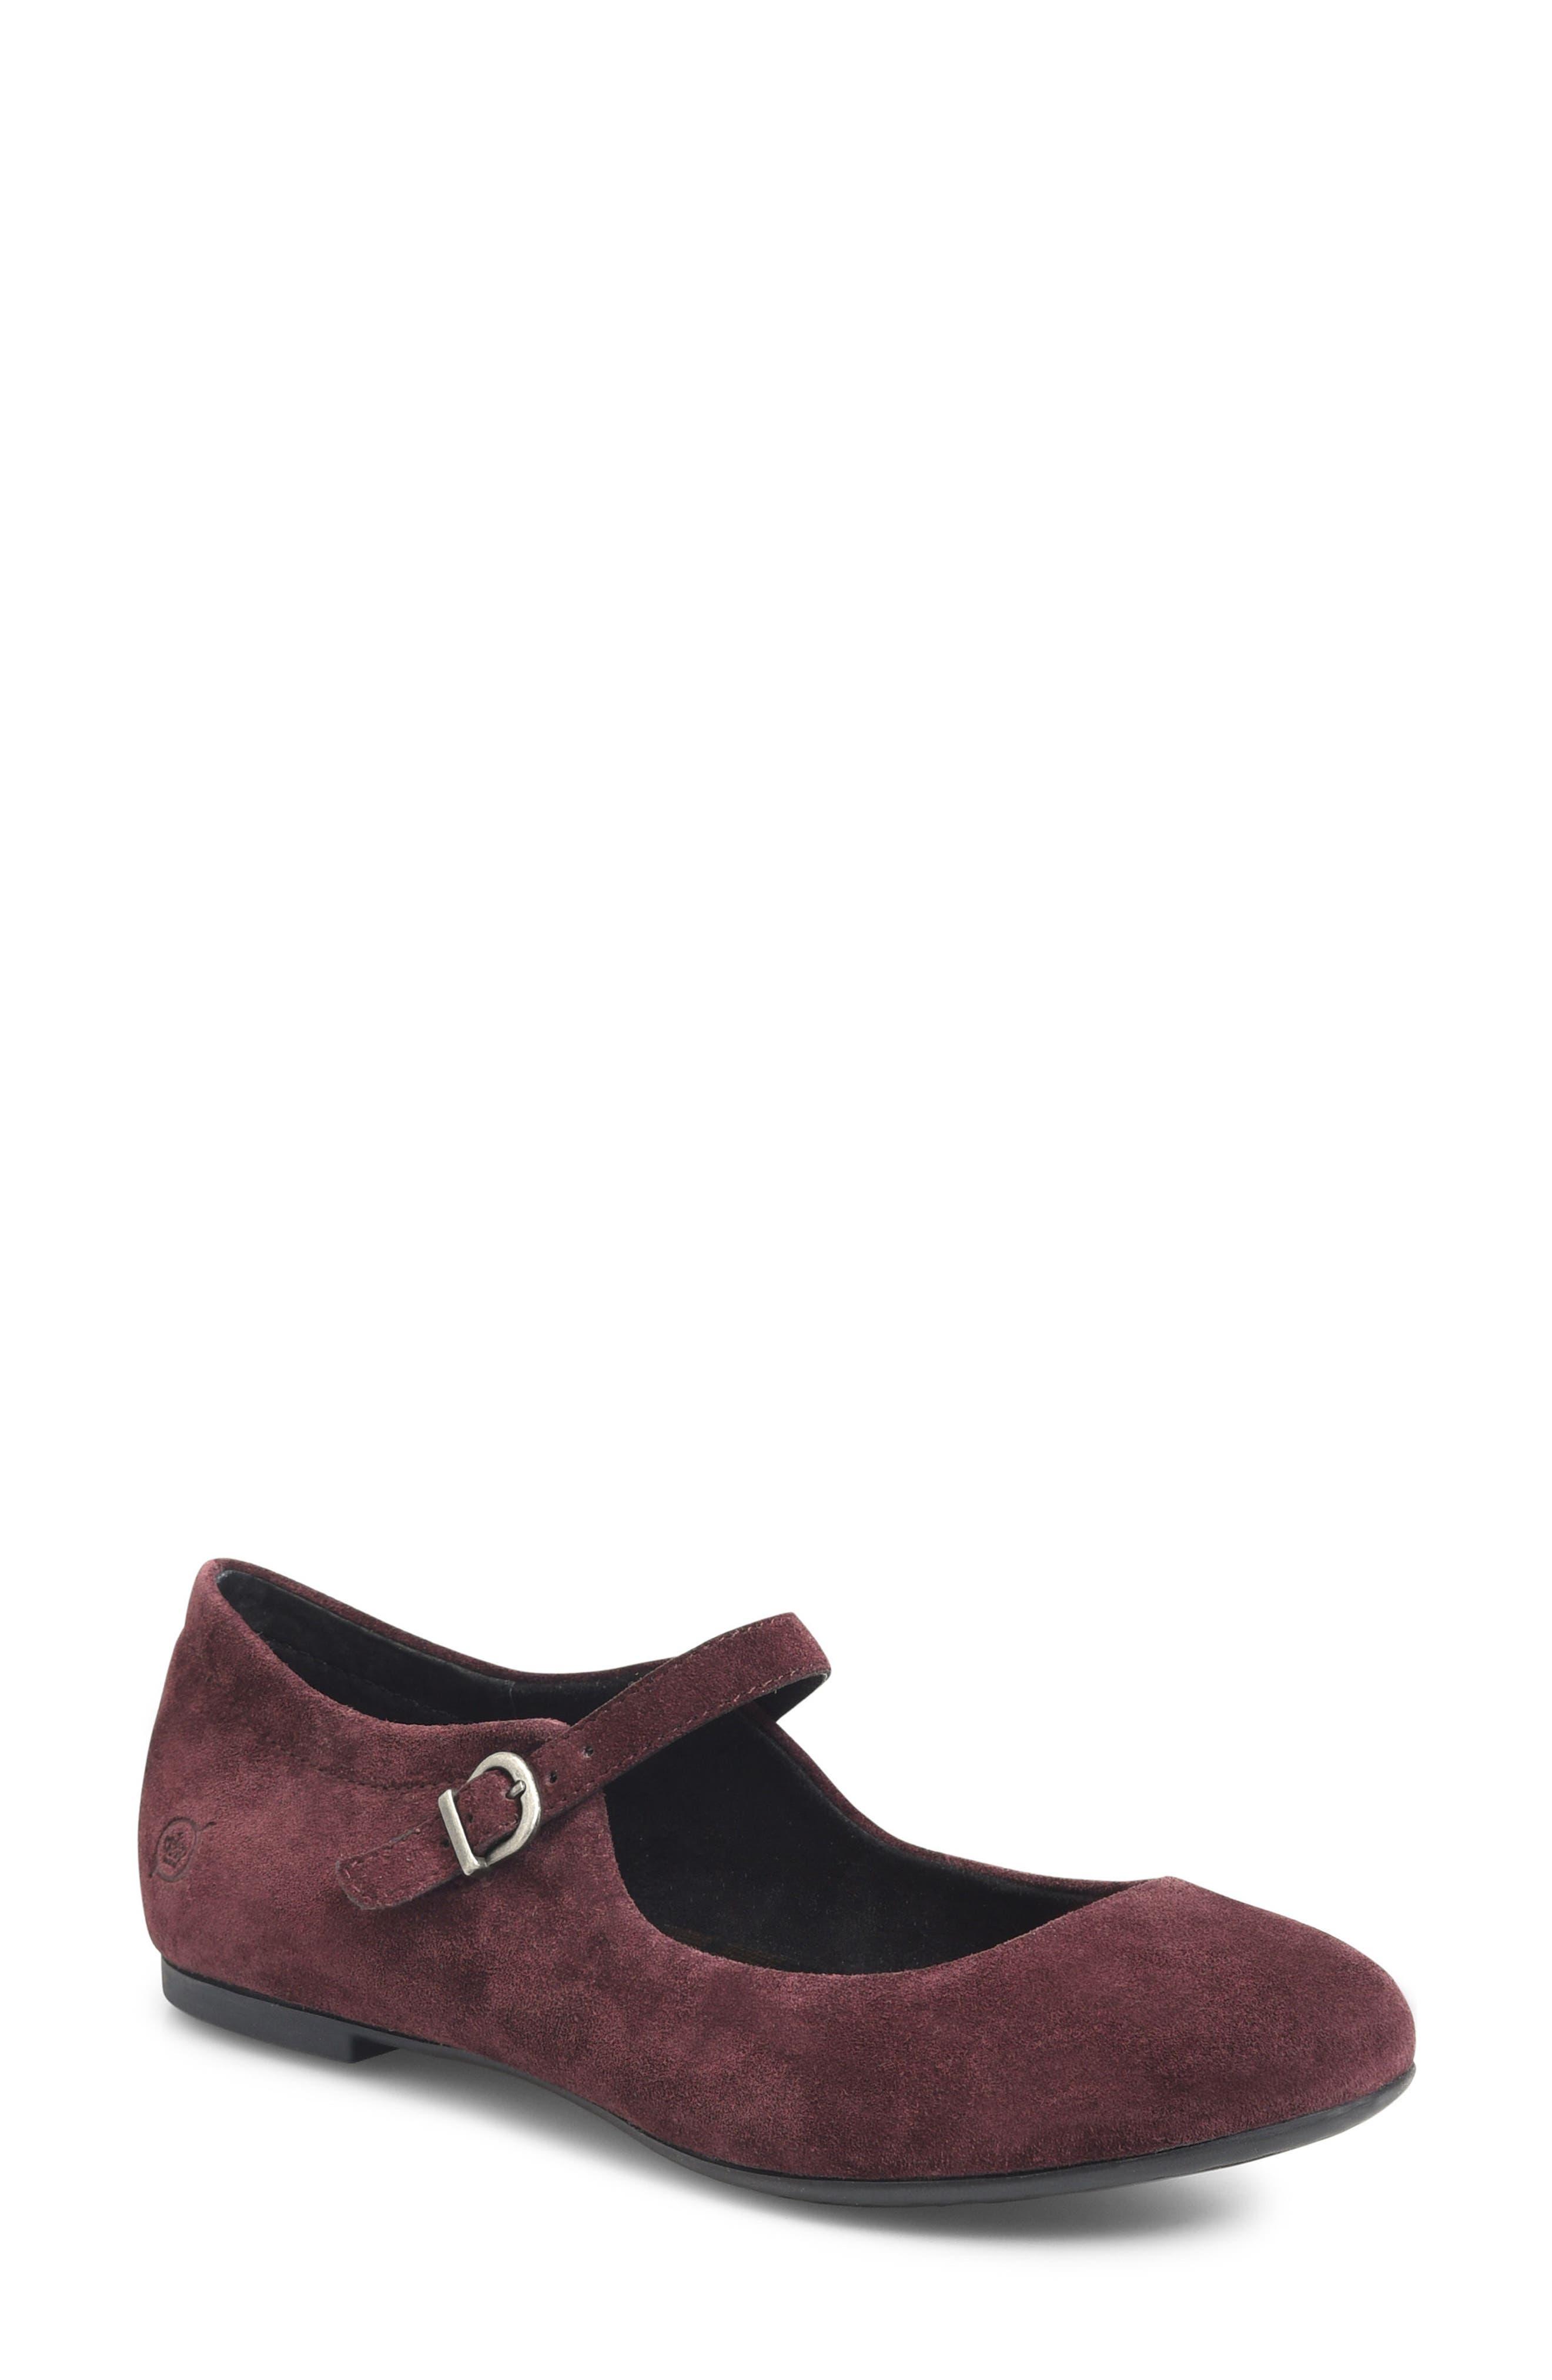 Arnor Mary Jane Flat,                         Main,                         color,